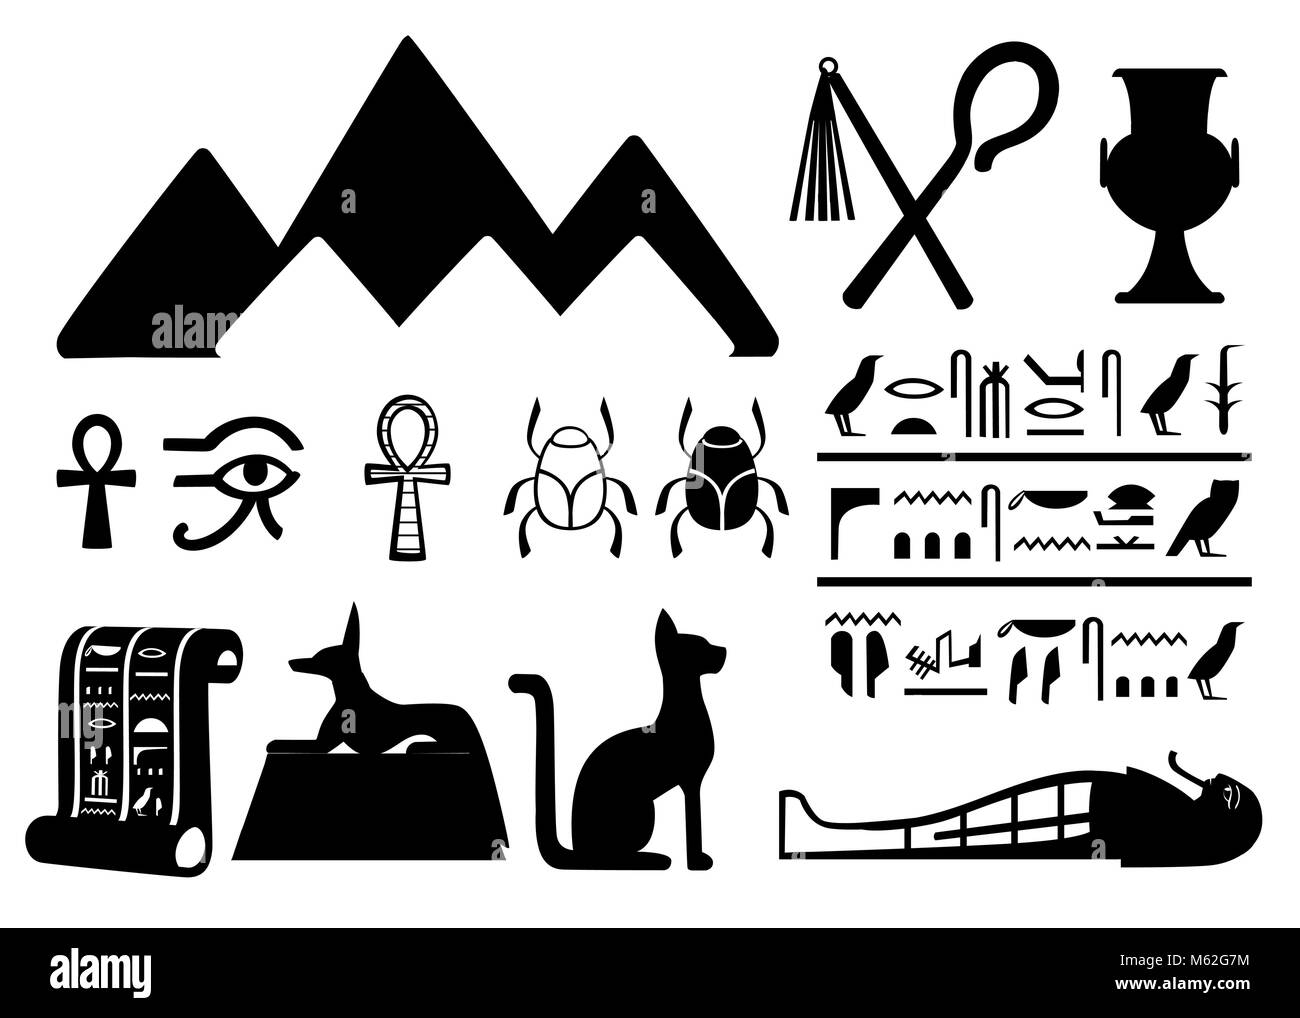 Ancient egyptian clothes stock photos ancient egyptian clothes black silhouettes ancient egyptian symbols and decoration egypt flat icons vector illustration isolated on white biocorpaavc